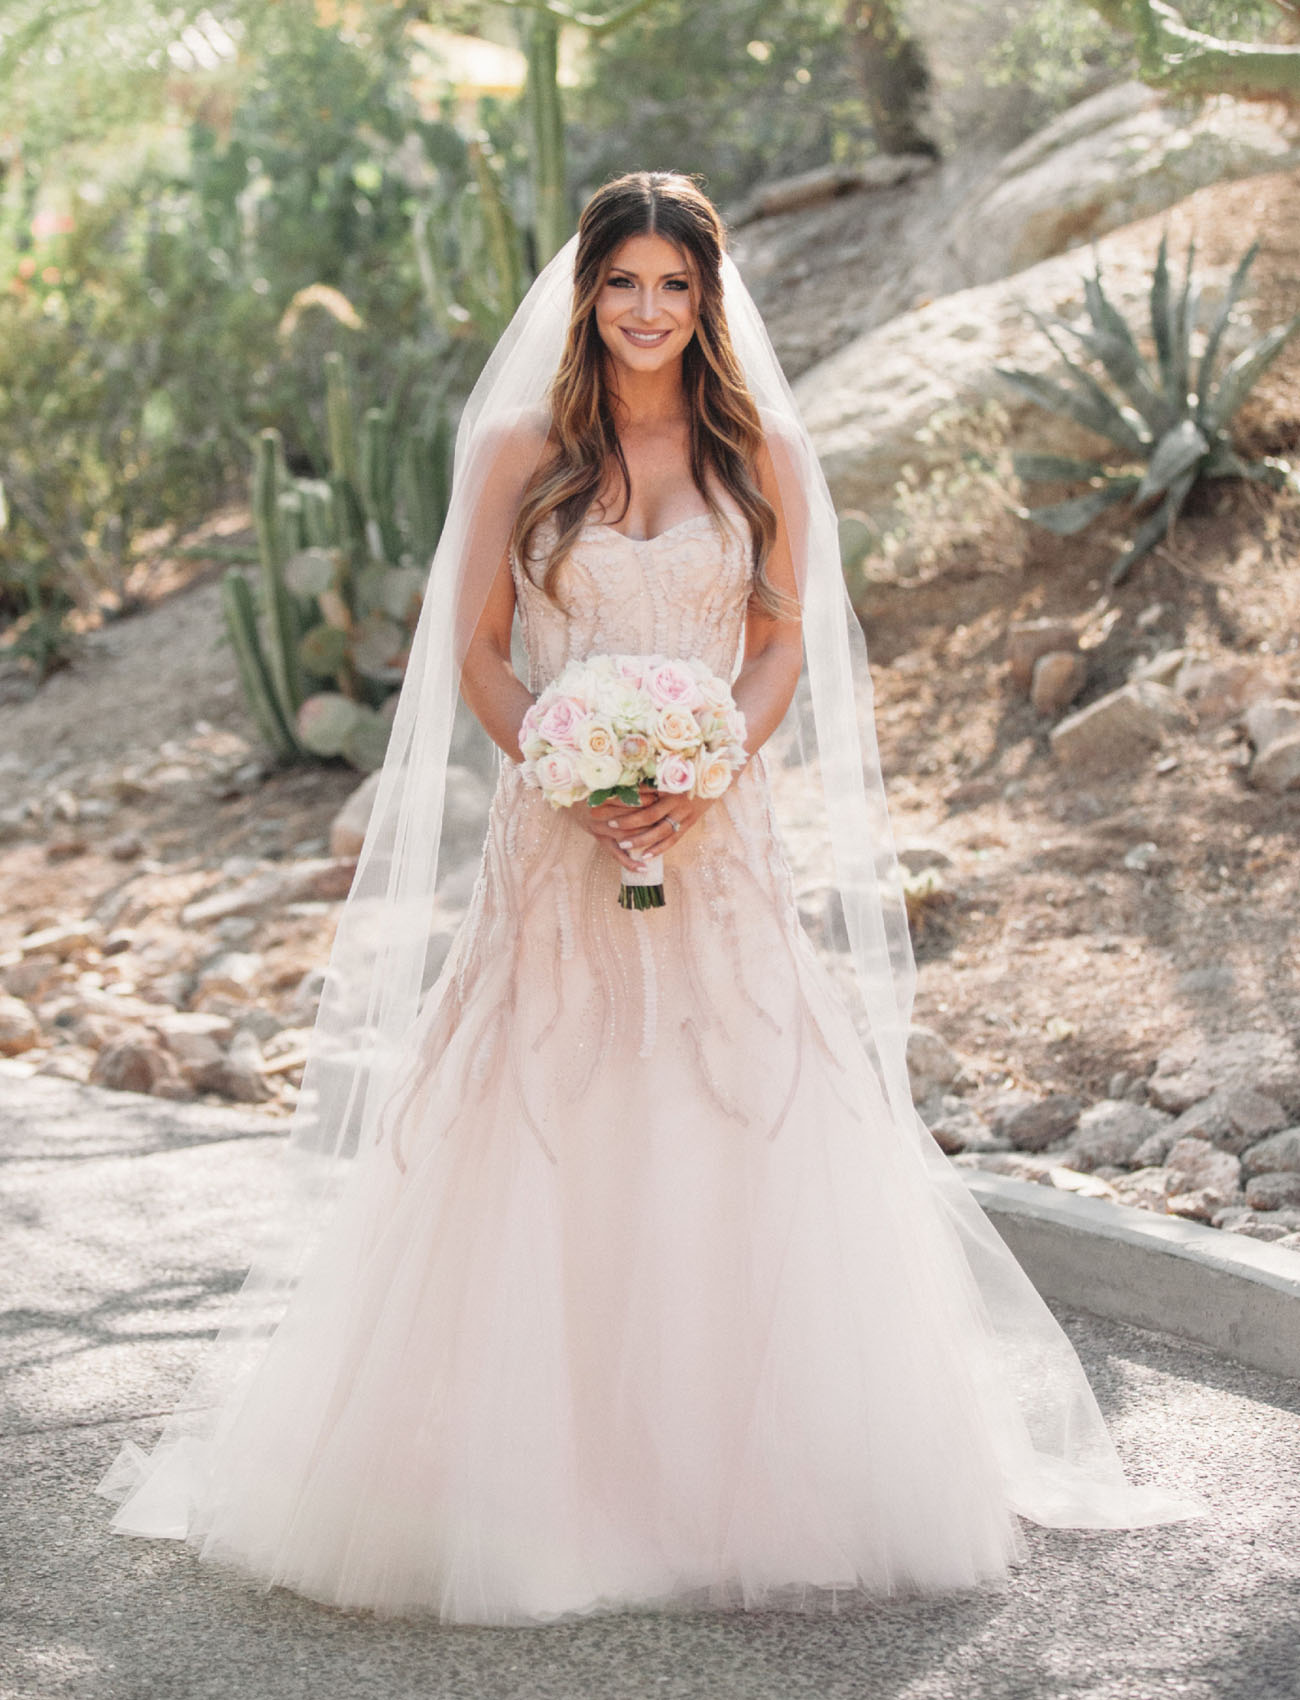 Marvelous For The Bride That Loves The Color Blush + Wants To Feel Like A Princess,  Weu0027re Pretty Sure This Monique Lhullier Was Made For You! Design